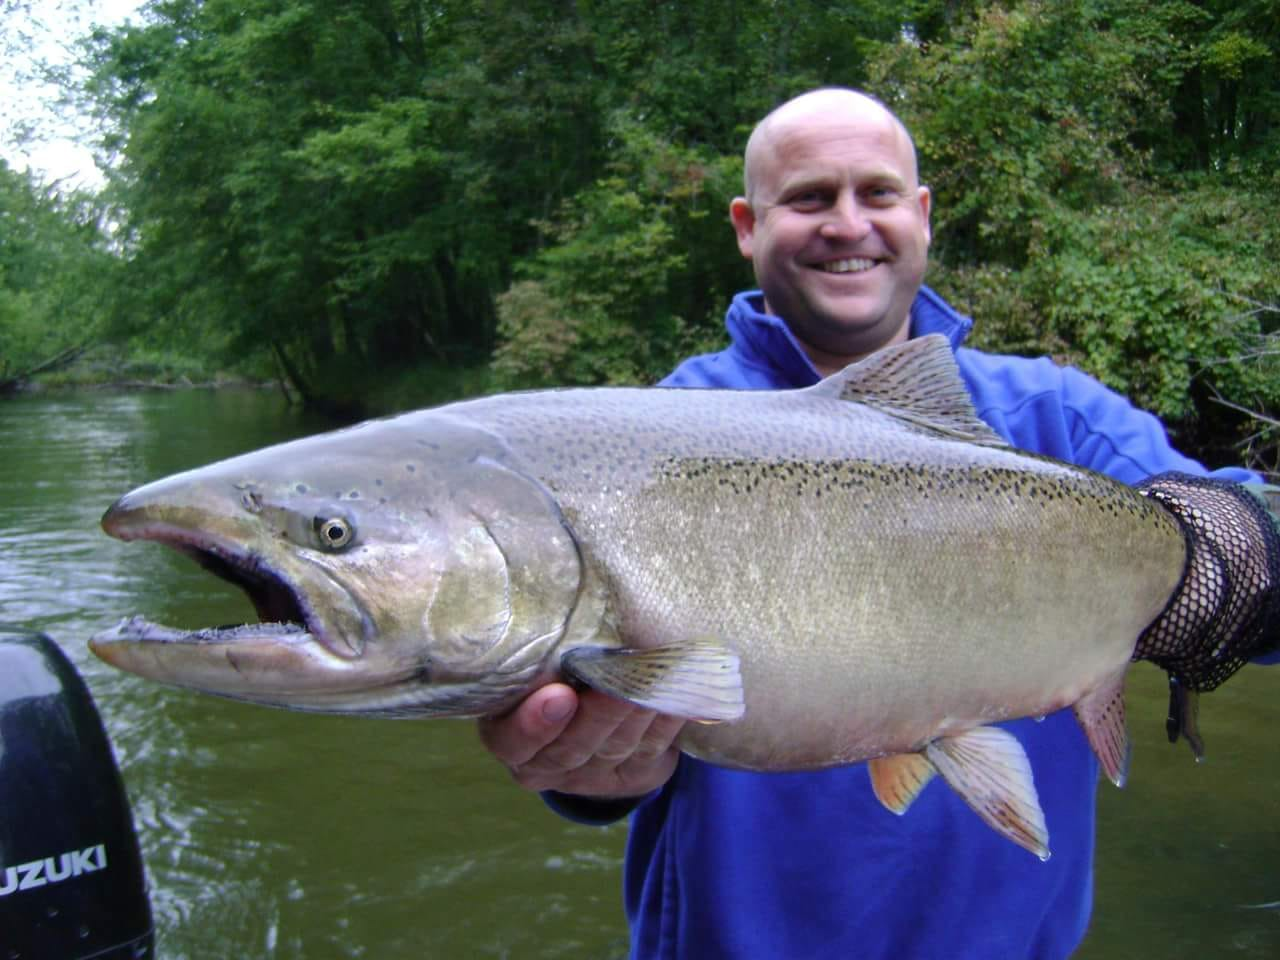 Fishing Report Archives - Michigan Fly Fishing Guides